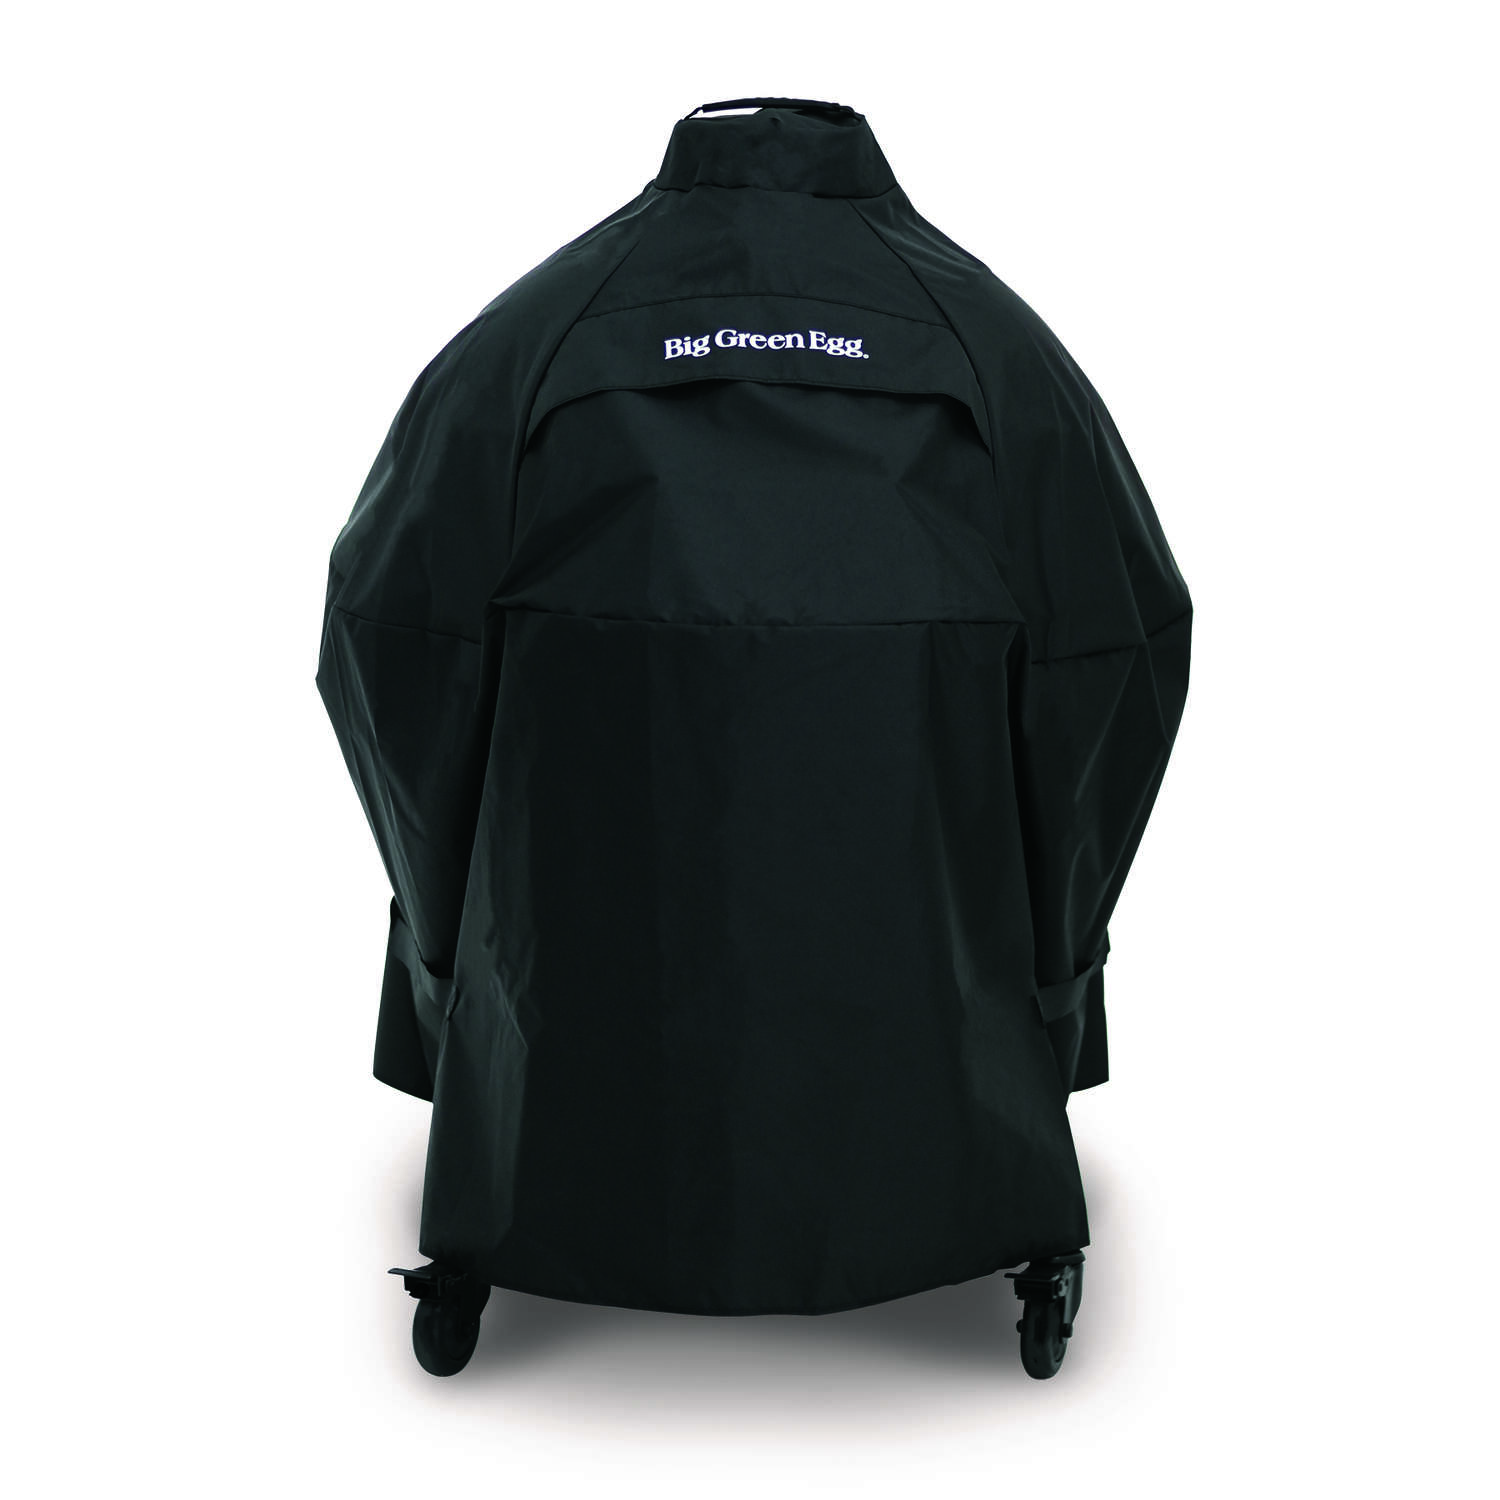 Big Green Egg  Black  Grill Cover  For XLarge and Large EGGs in intEGGrated Nest Han 10 in. W x 13 i